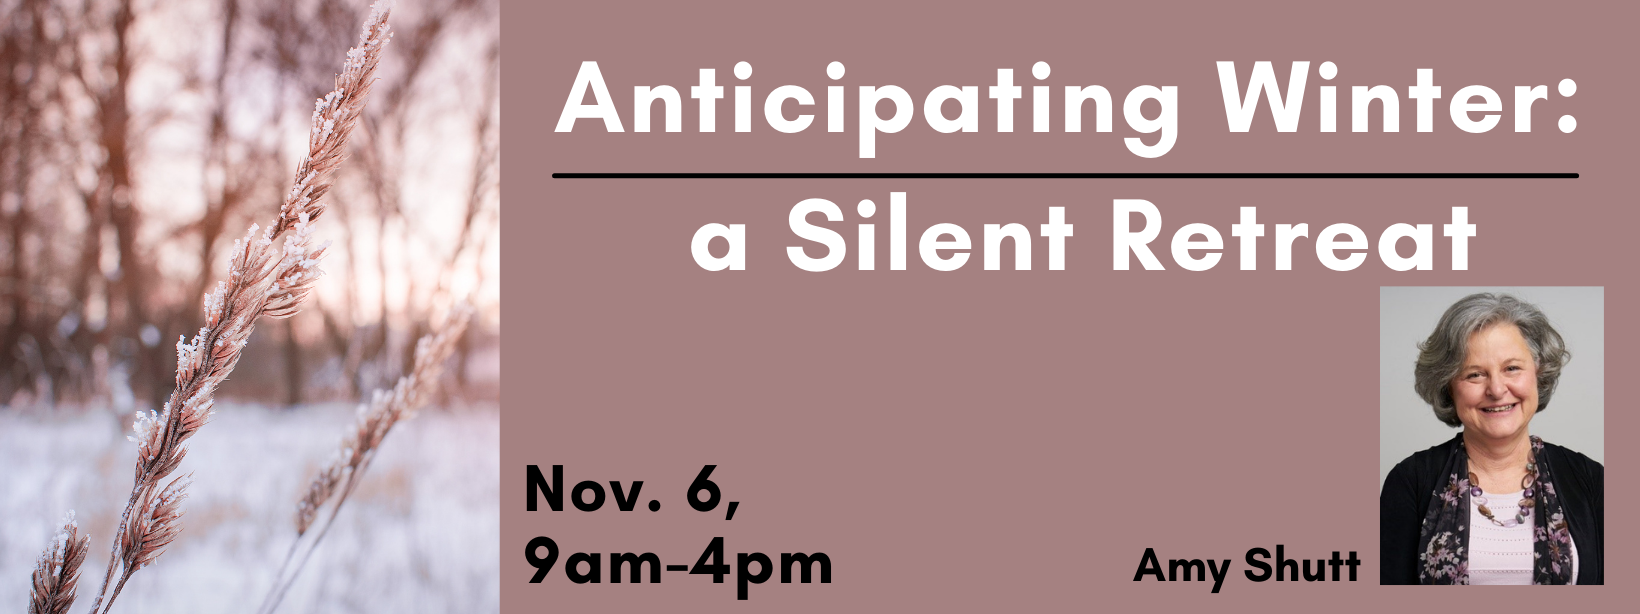 Anticipating Winter: Silent Retreat at The Wittel Farm